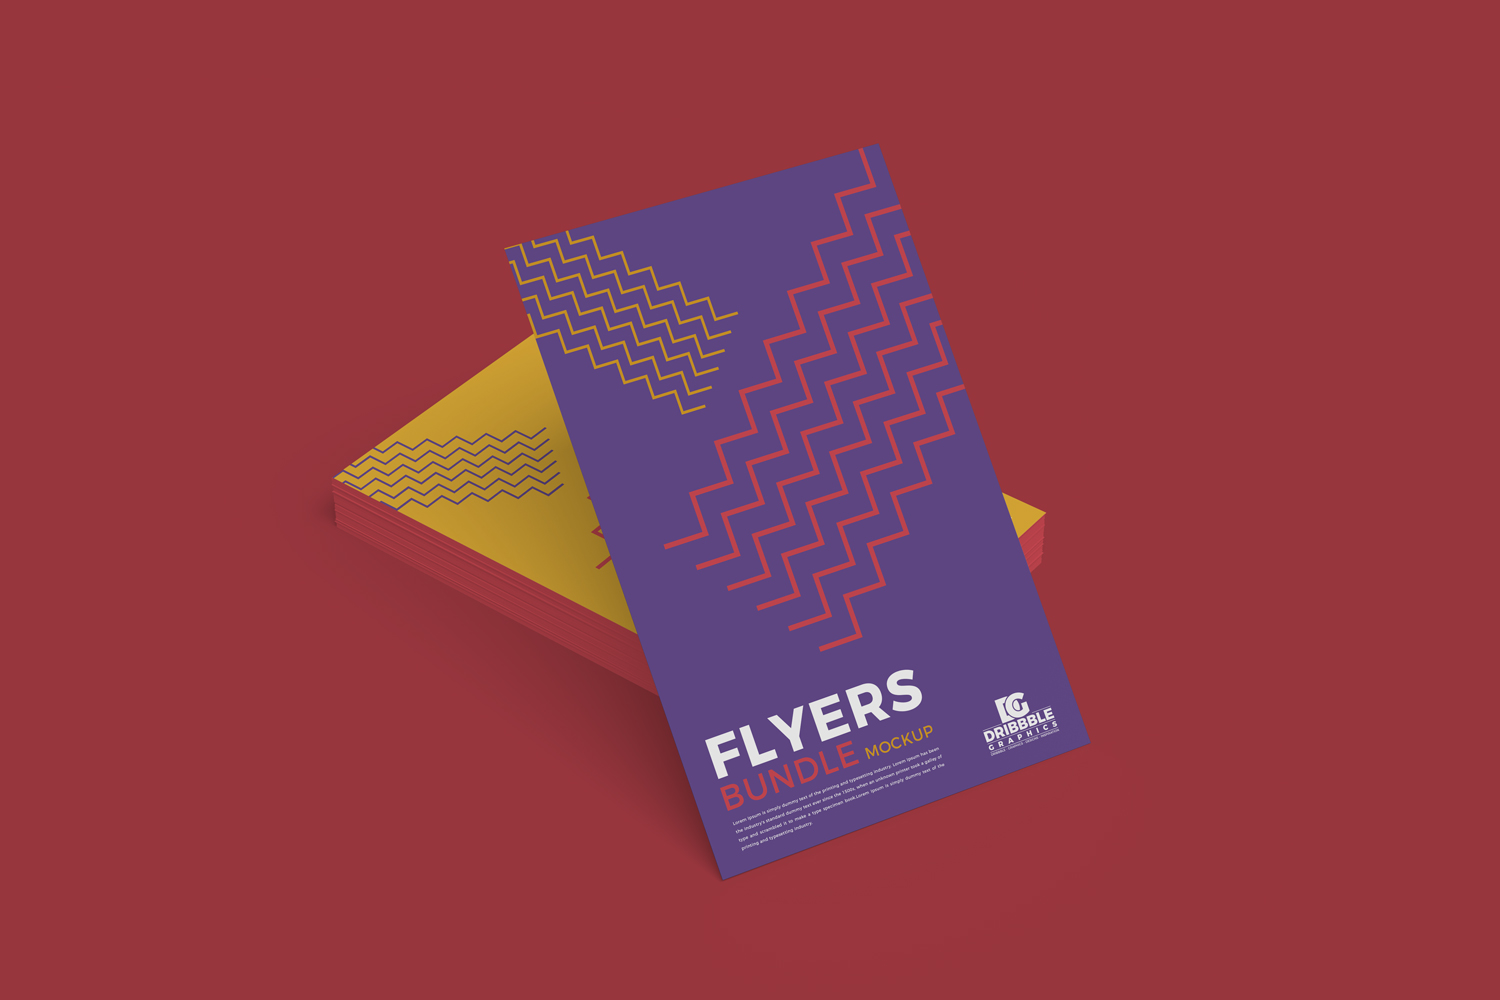 Free-Flyers-Bundle-Mockup-PSD-For-Branding-2